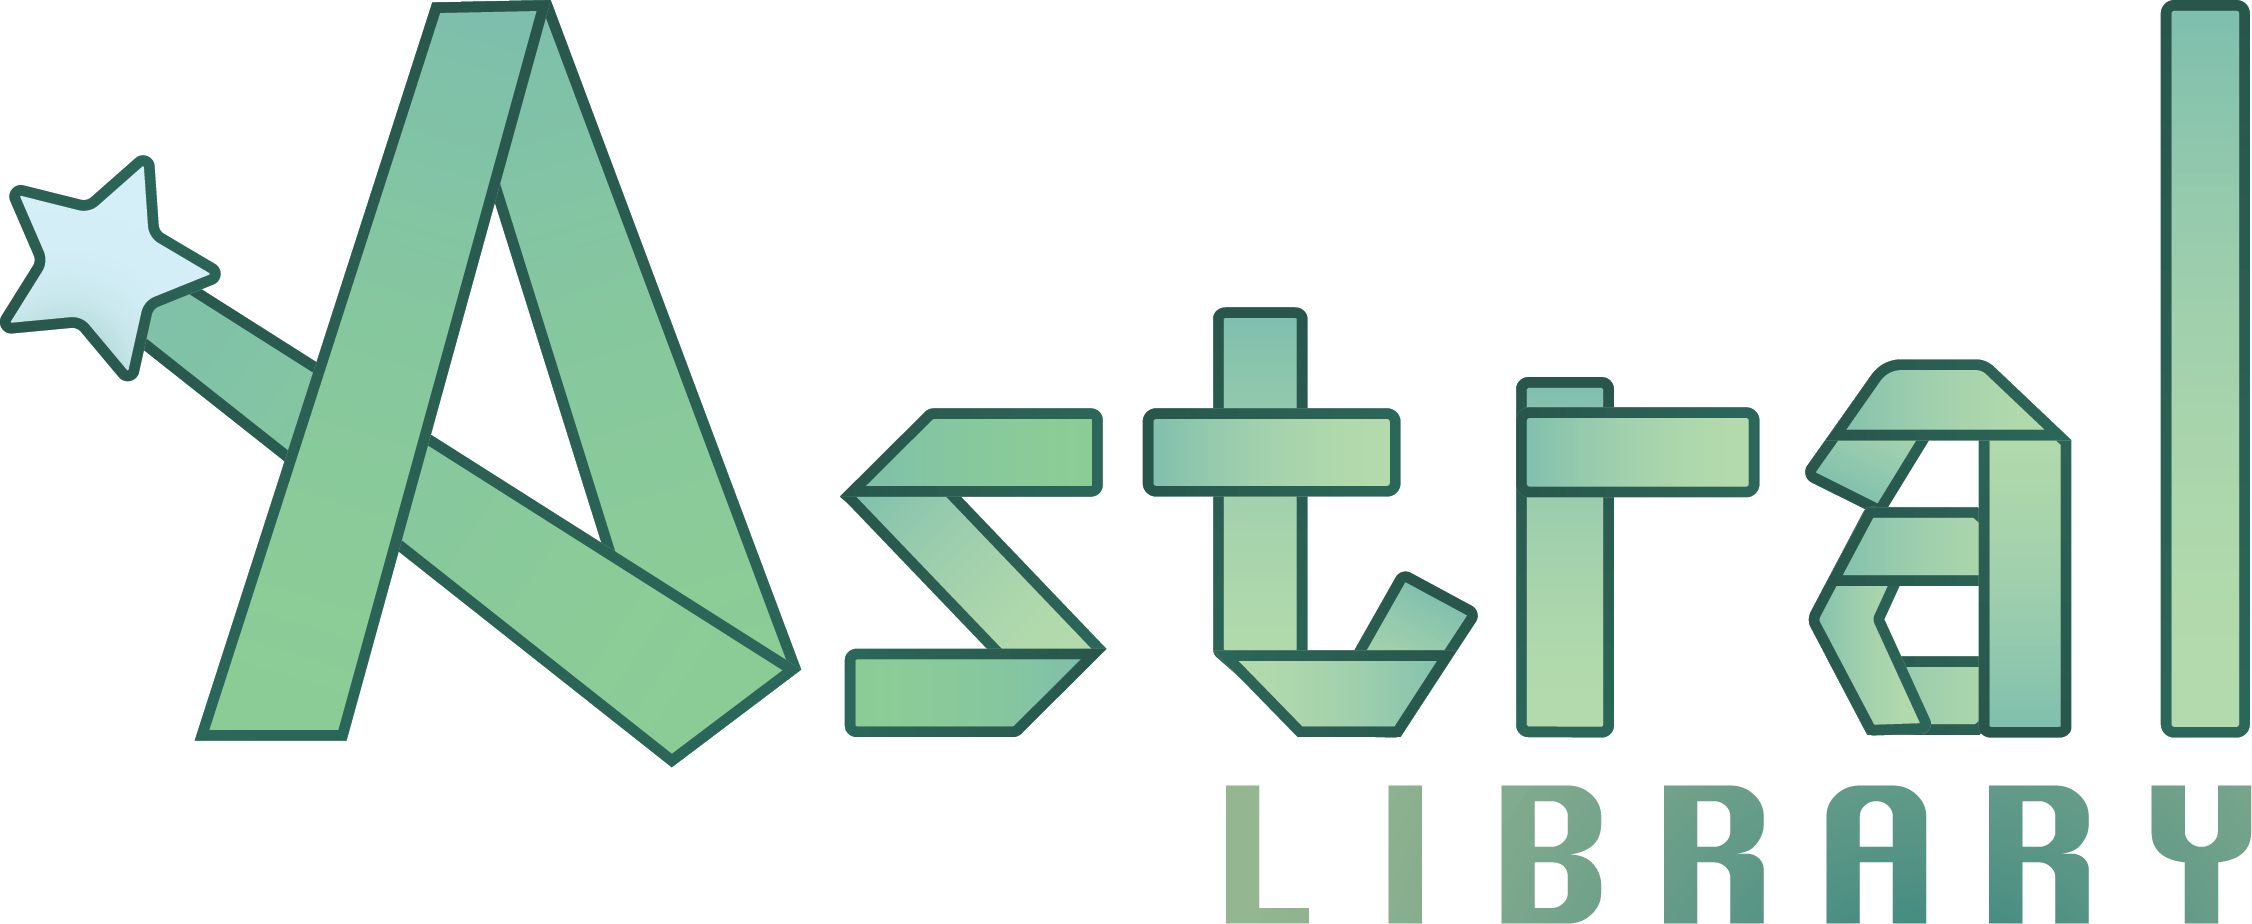 Astral Library